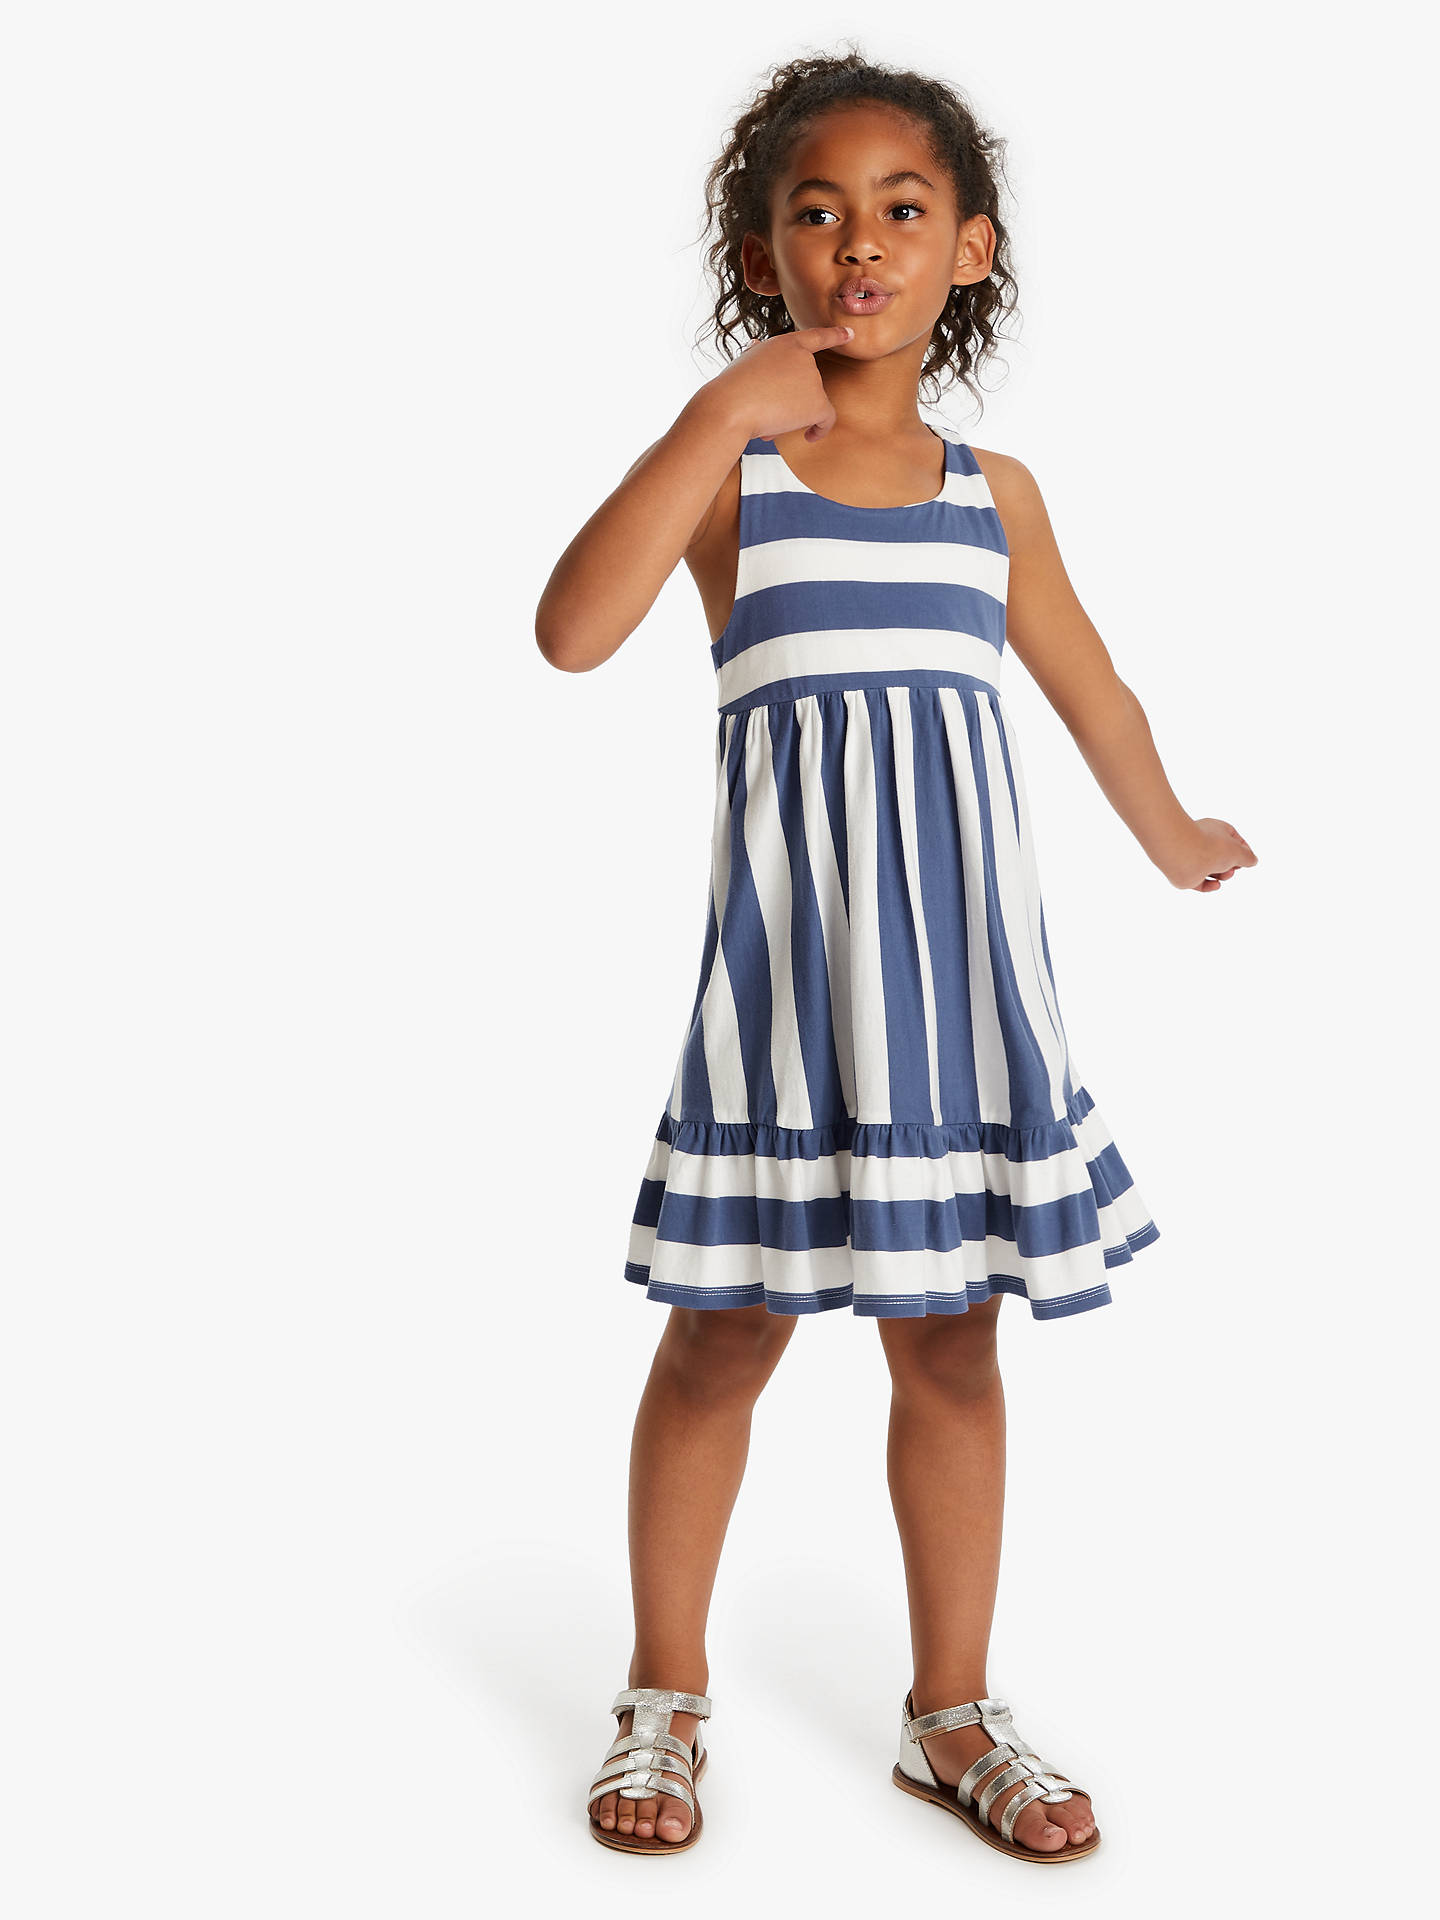 ac4210d2fc90 ... Buy Little Joules Girls' Juno Peplum Midi Dress, White/Blue, 4 years ...